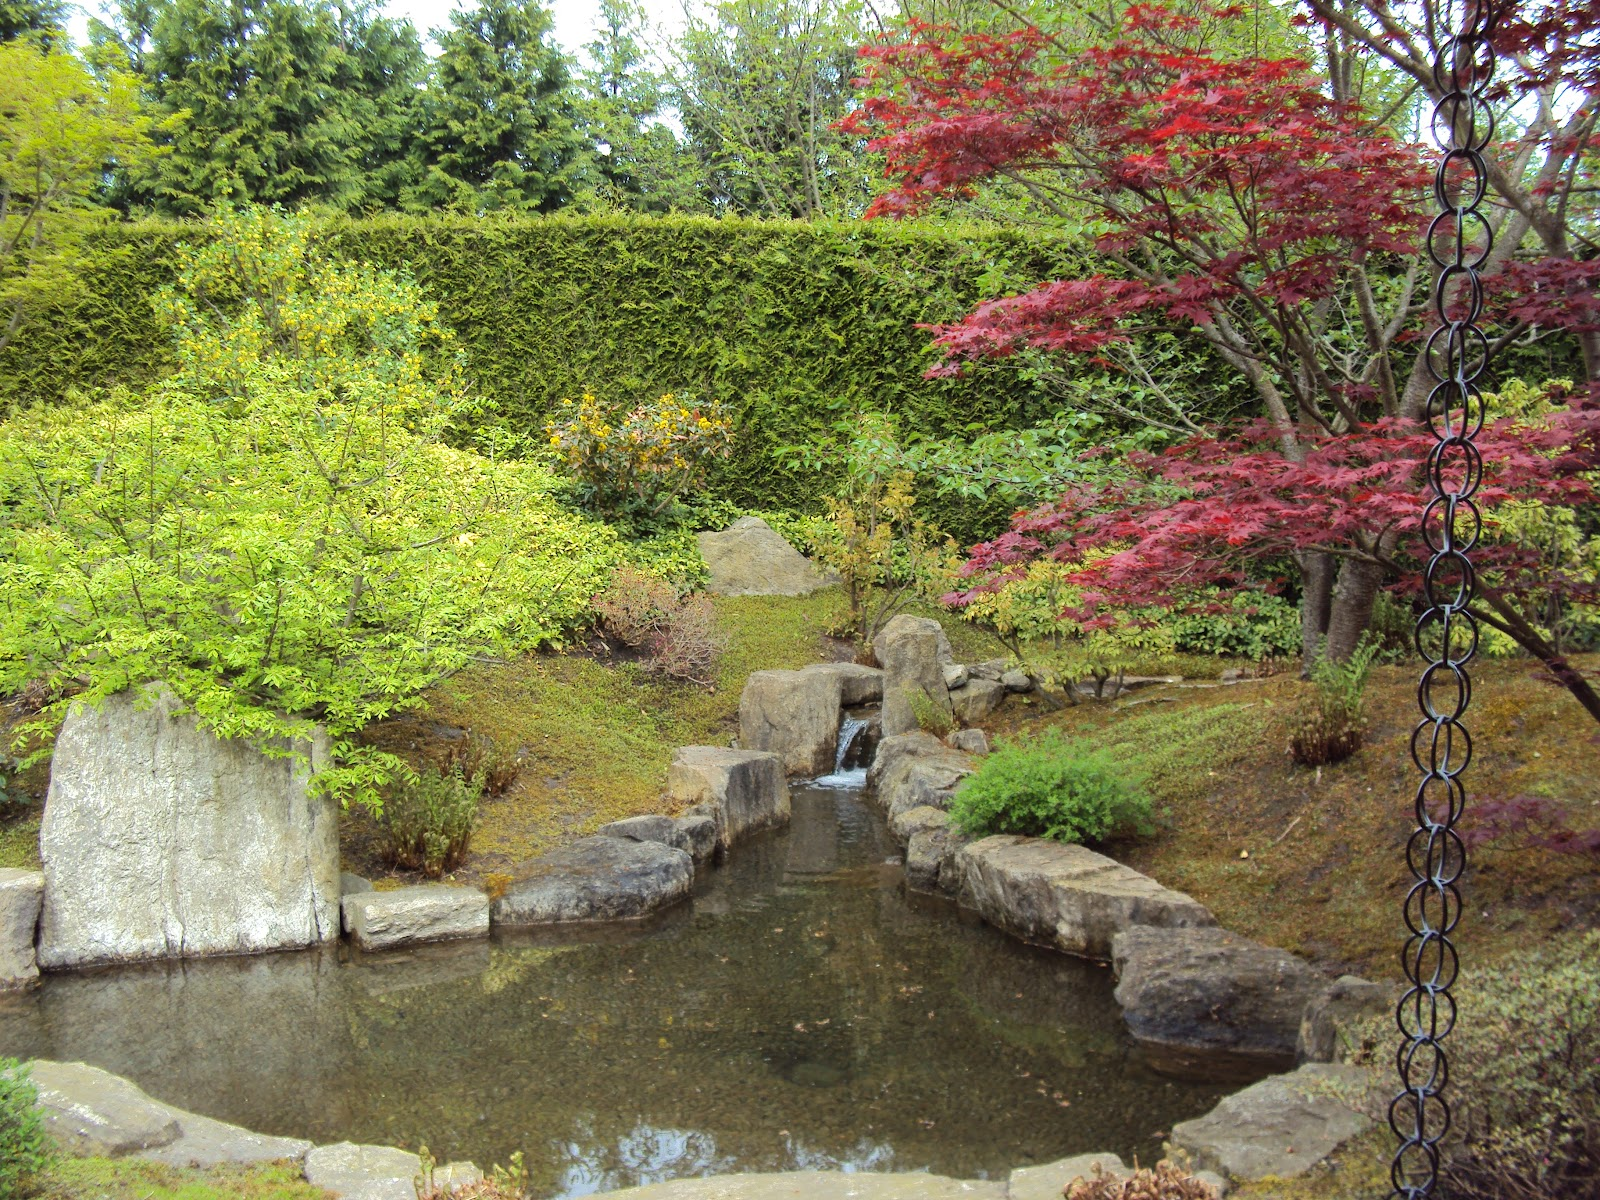 Asiatischer Garten Marzahn Panamanga Quotgardens Of The World Quot In Marzahn Japanese Garden